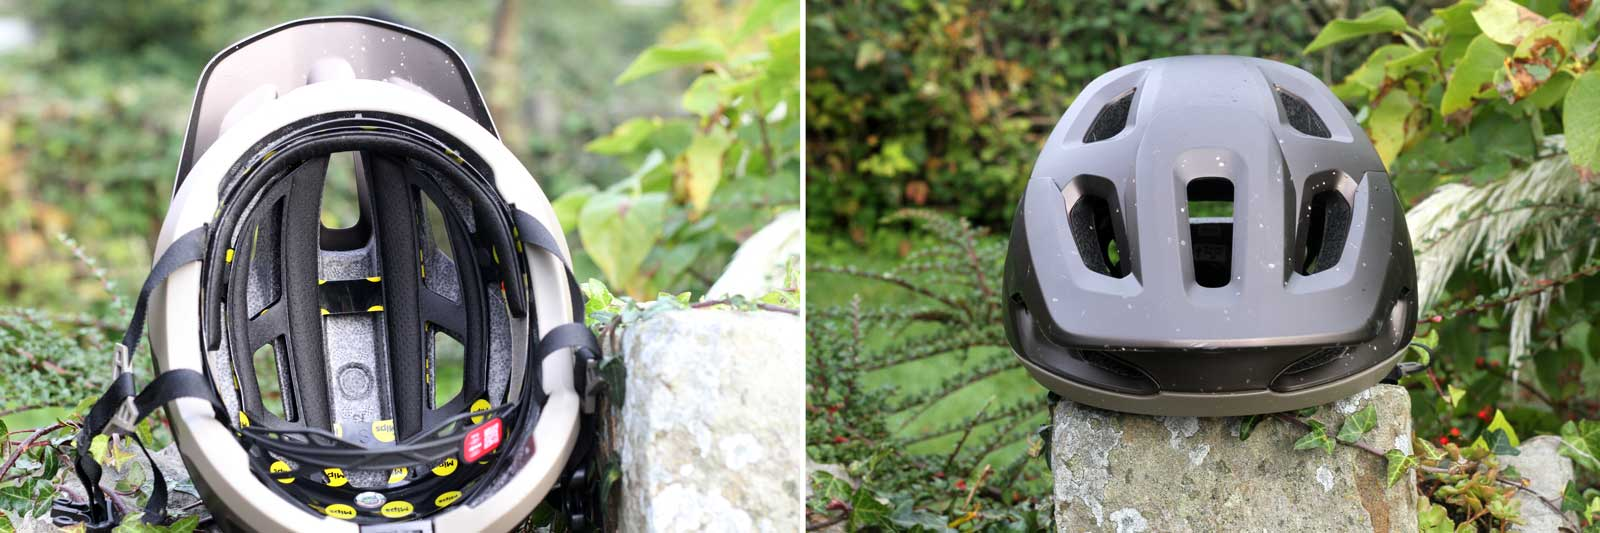 specialized tactic 4 helmet review front vents